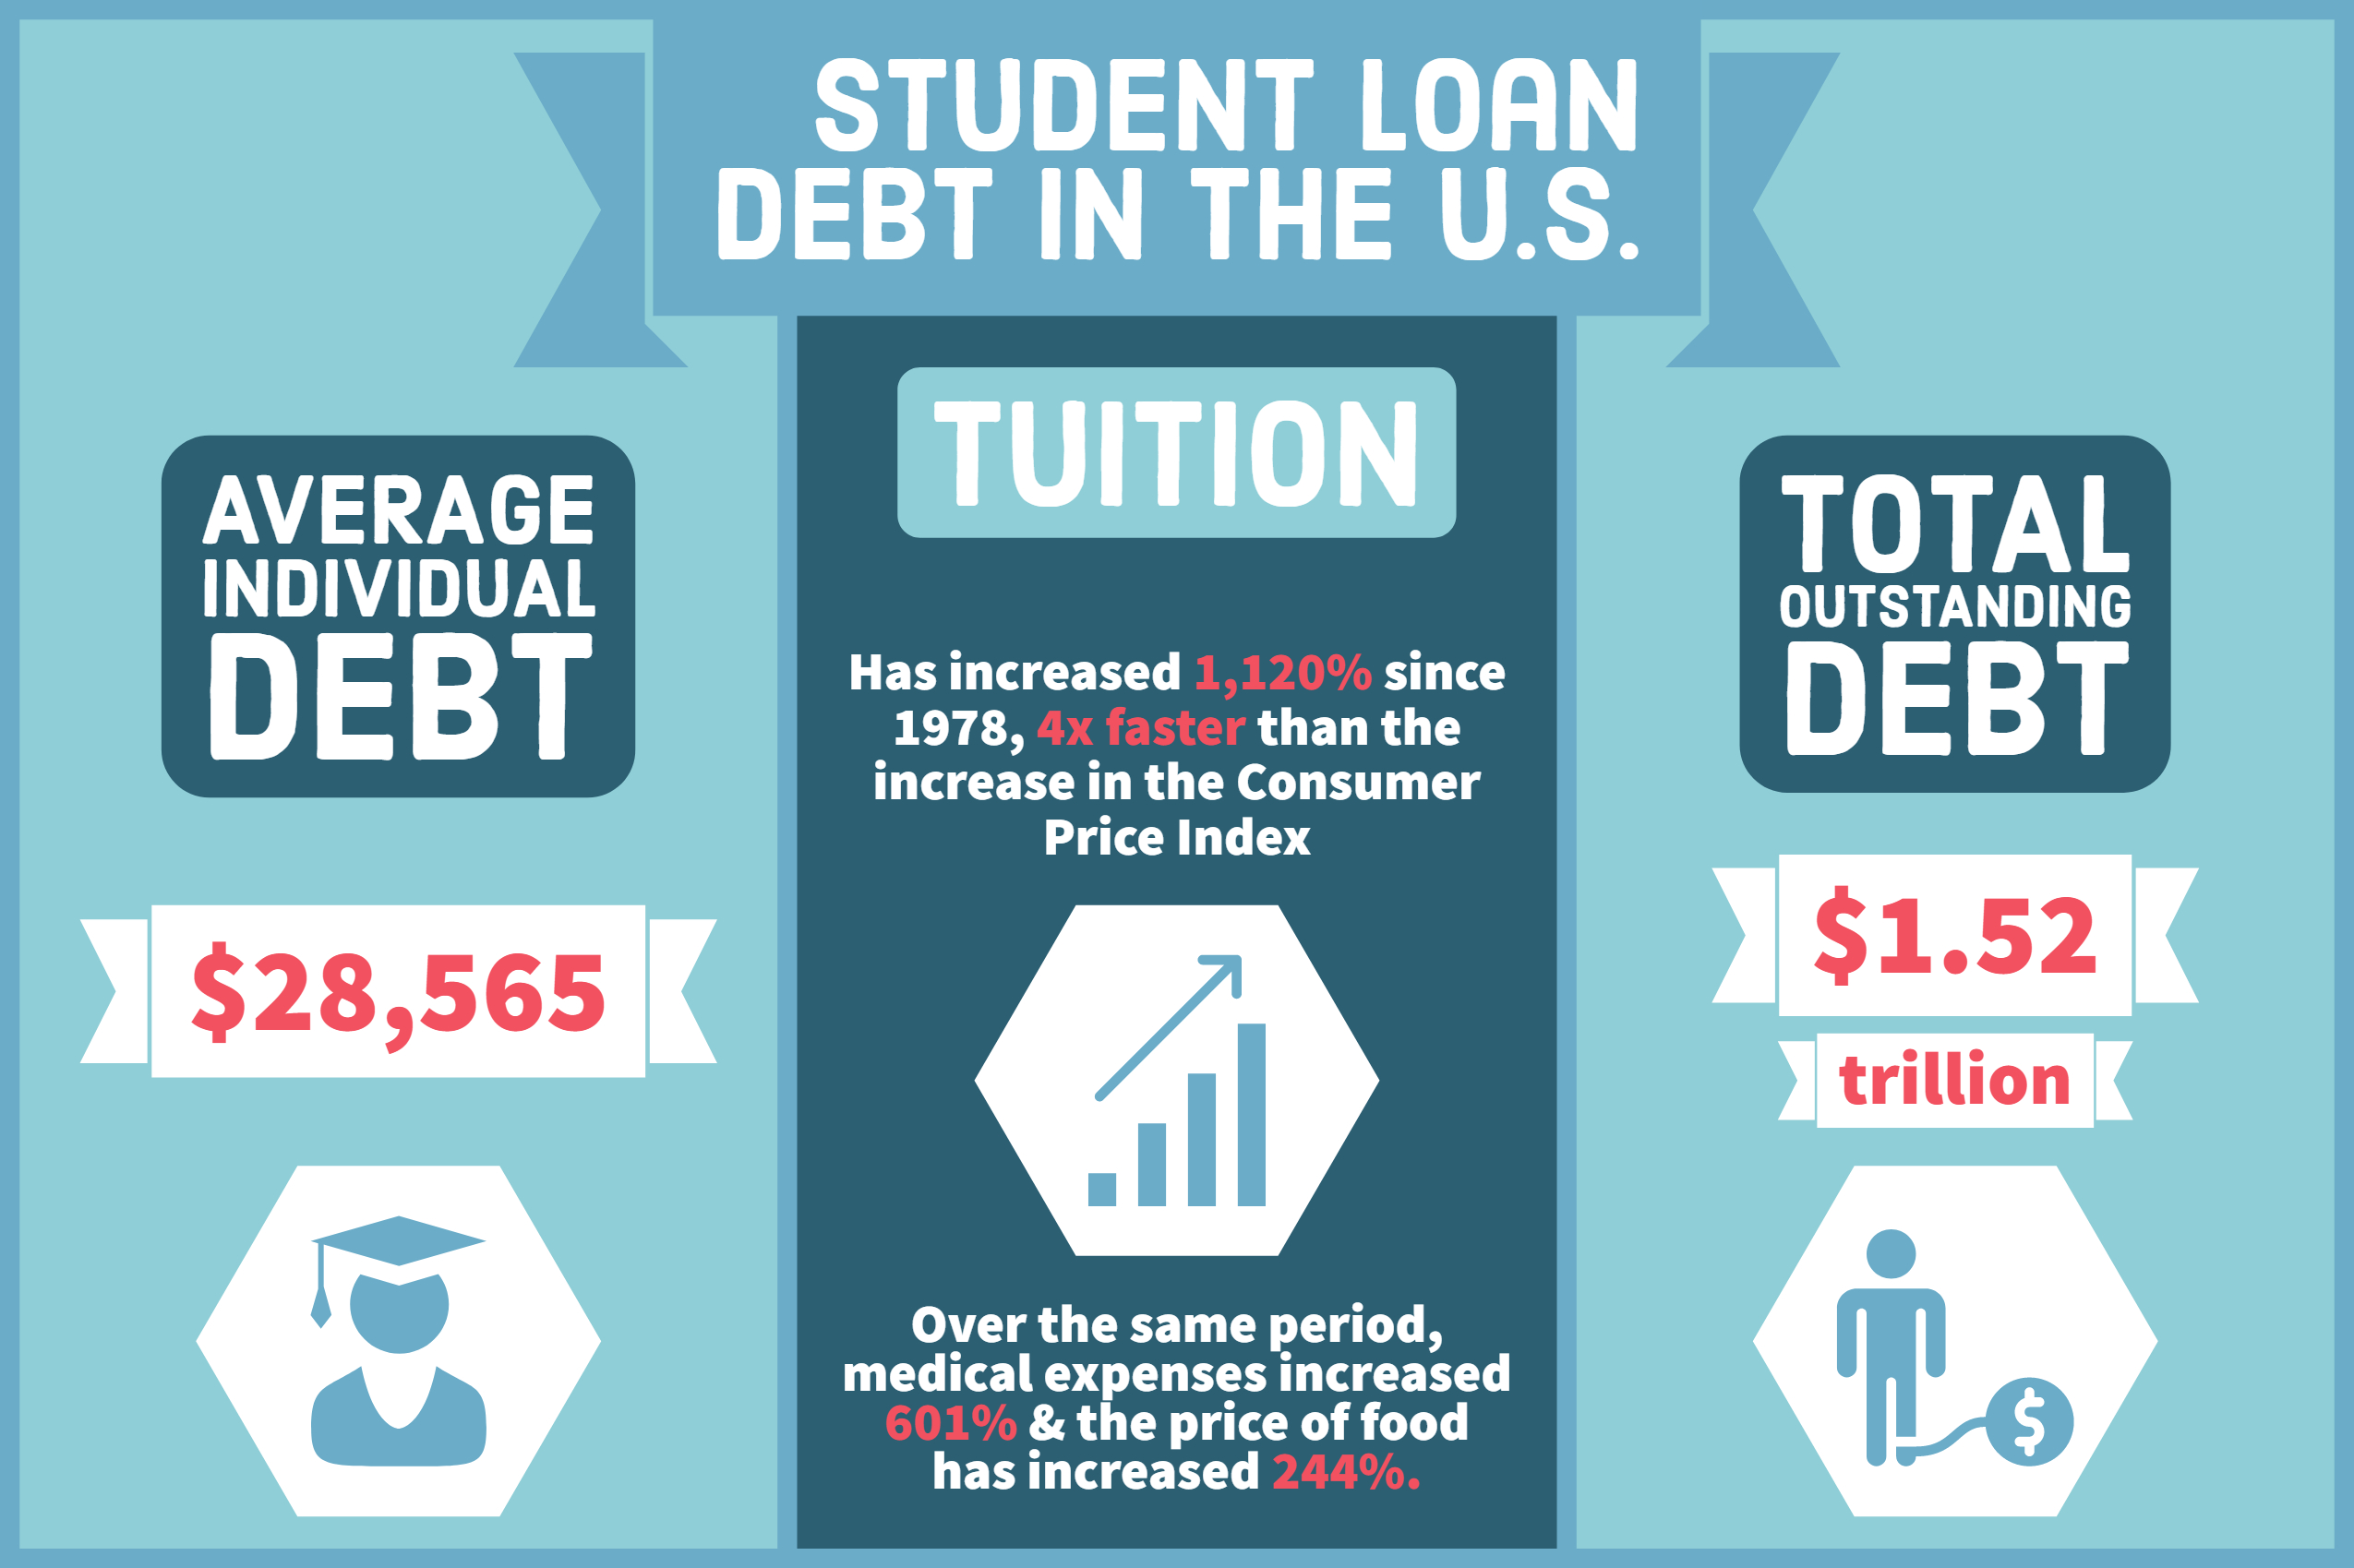 US Student Loan Debt 2020